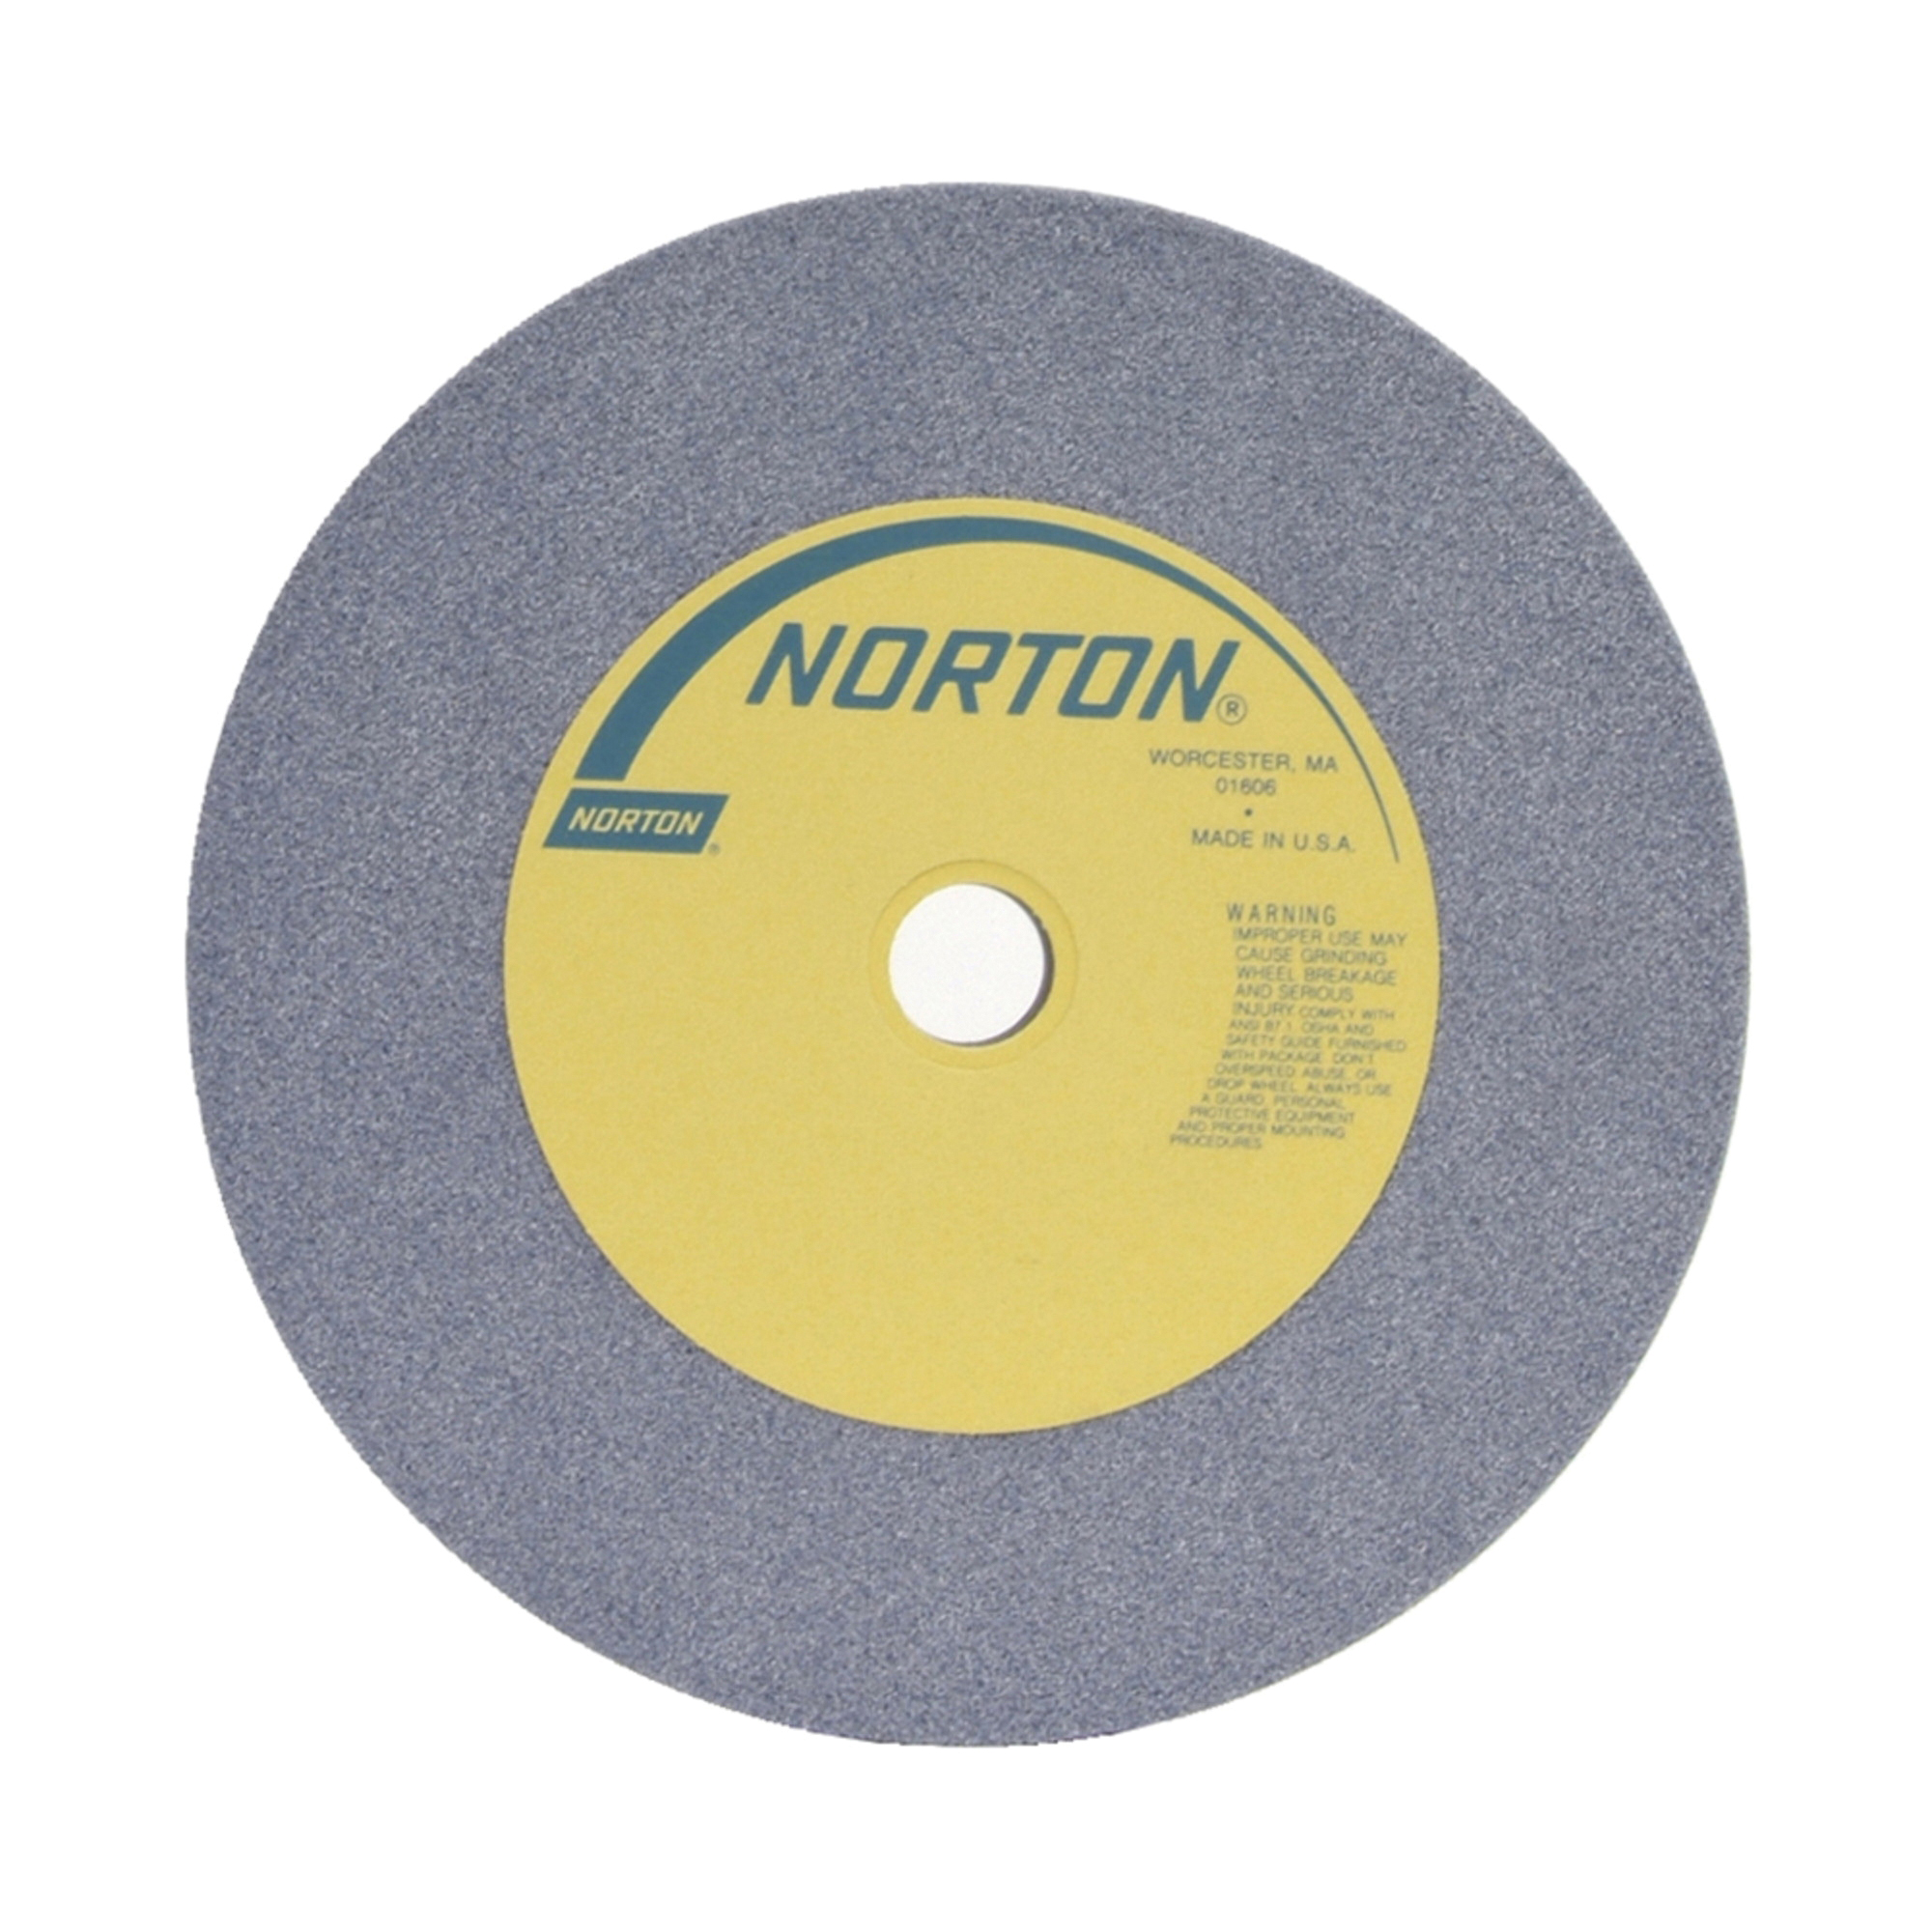 Norton® 66253263463 32A Straight Toolroom Wheel, 12 in Dia x 2 in THK, 1-1/4 in Center Hole, 46 Grit, Aluminum Oxide Abrasive